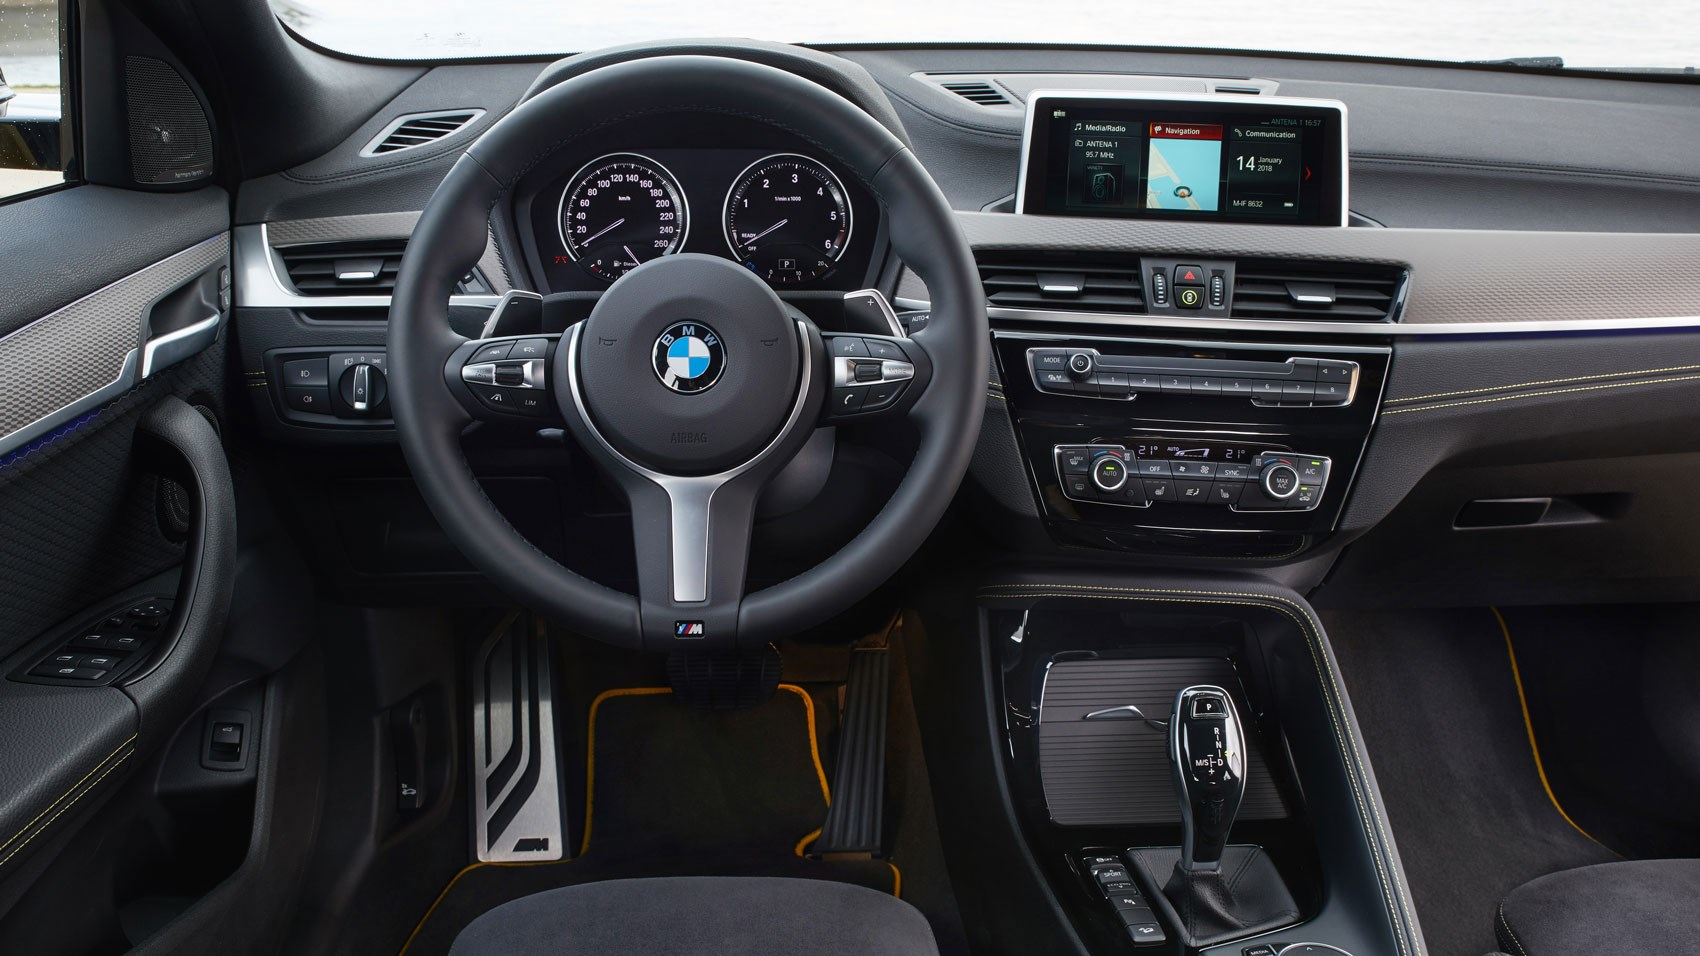 Bmw Of Towson >> Bmw X2 Interior 2018 | www.indiepedia.org